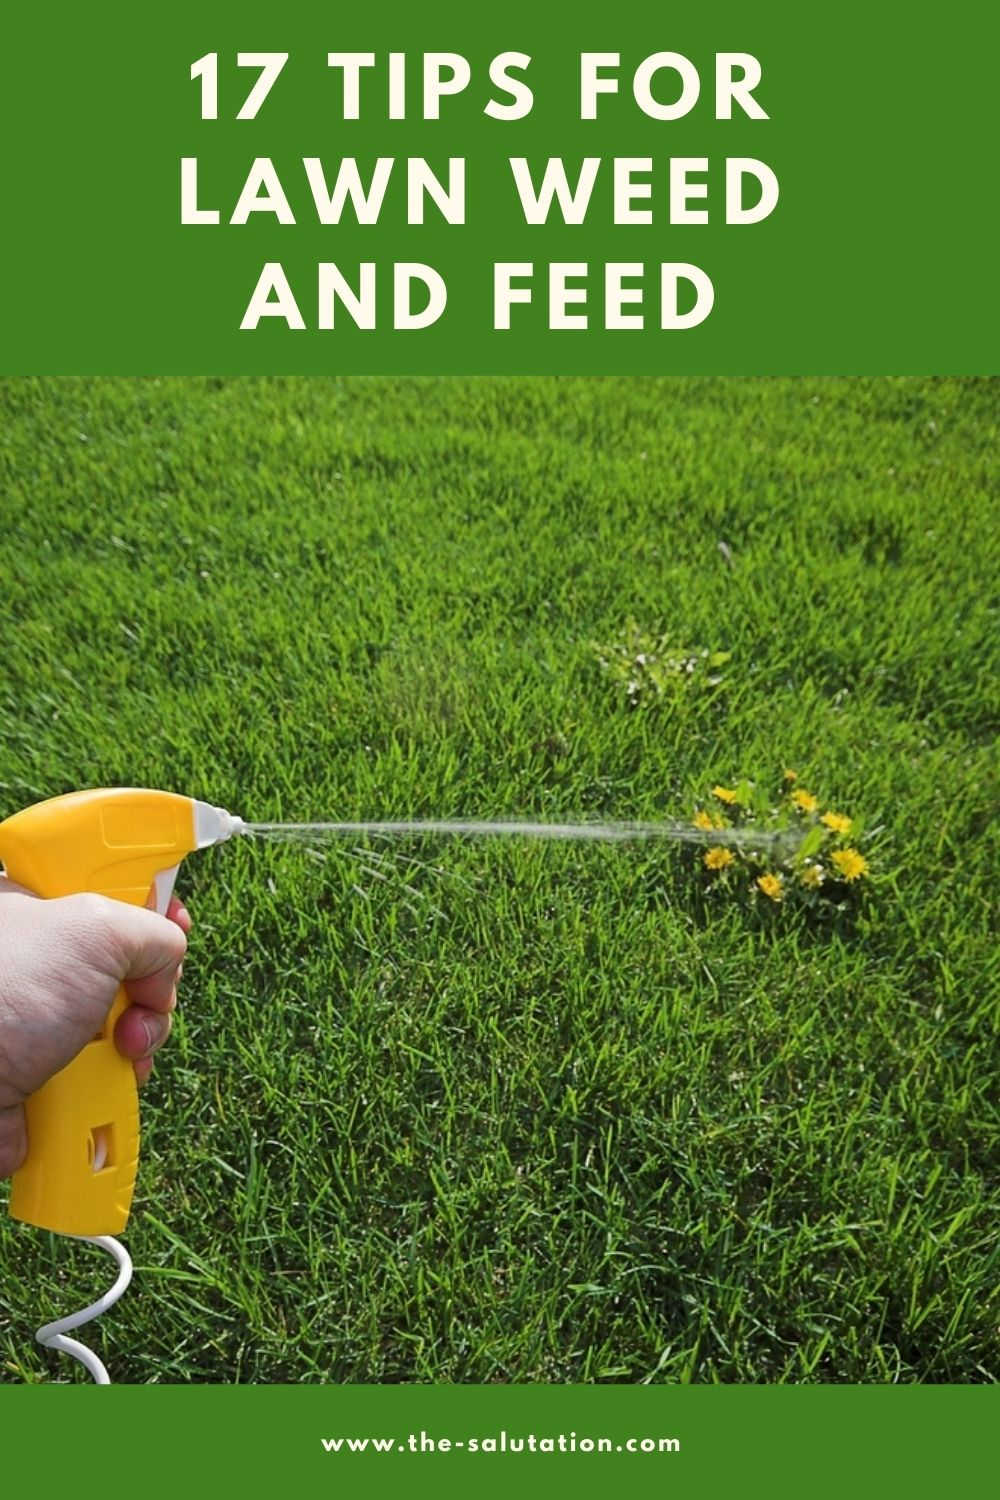 17 Tips for Lawn Weed and Feed 1